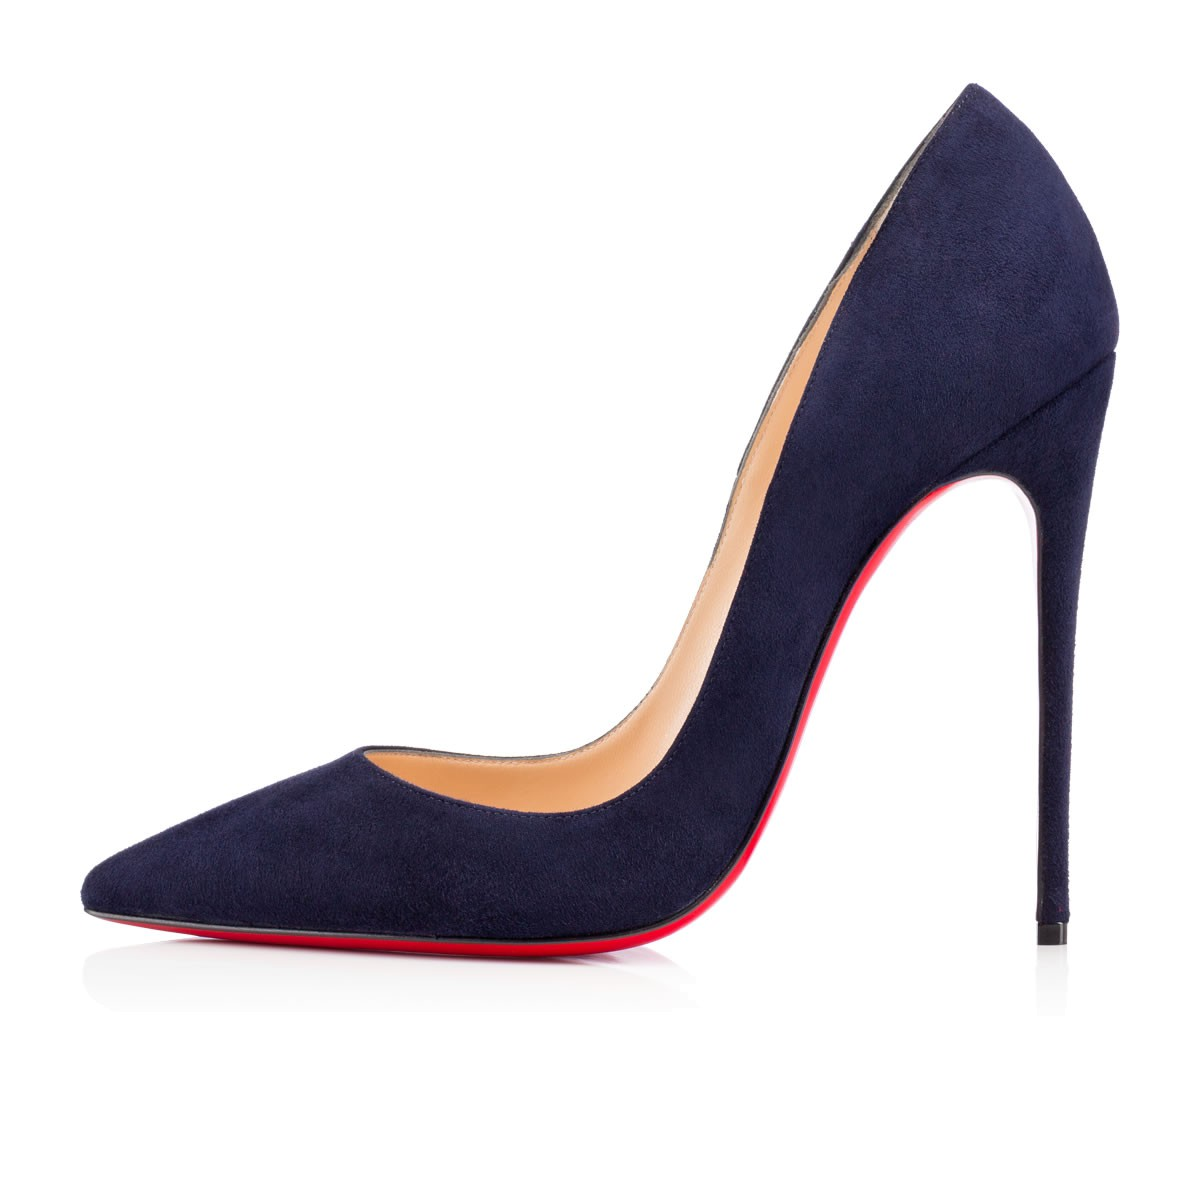 CHRISTIAN LOUBOUTIN Midnight Blue Suede 'So Kate 120' Stiletto Pumps at Christian Louboutin